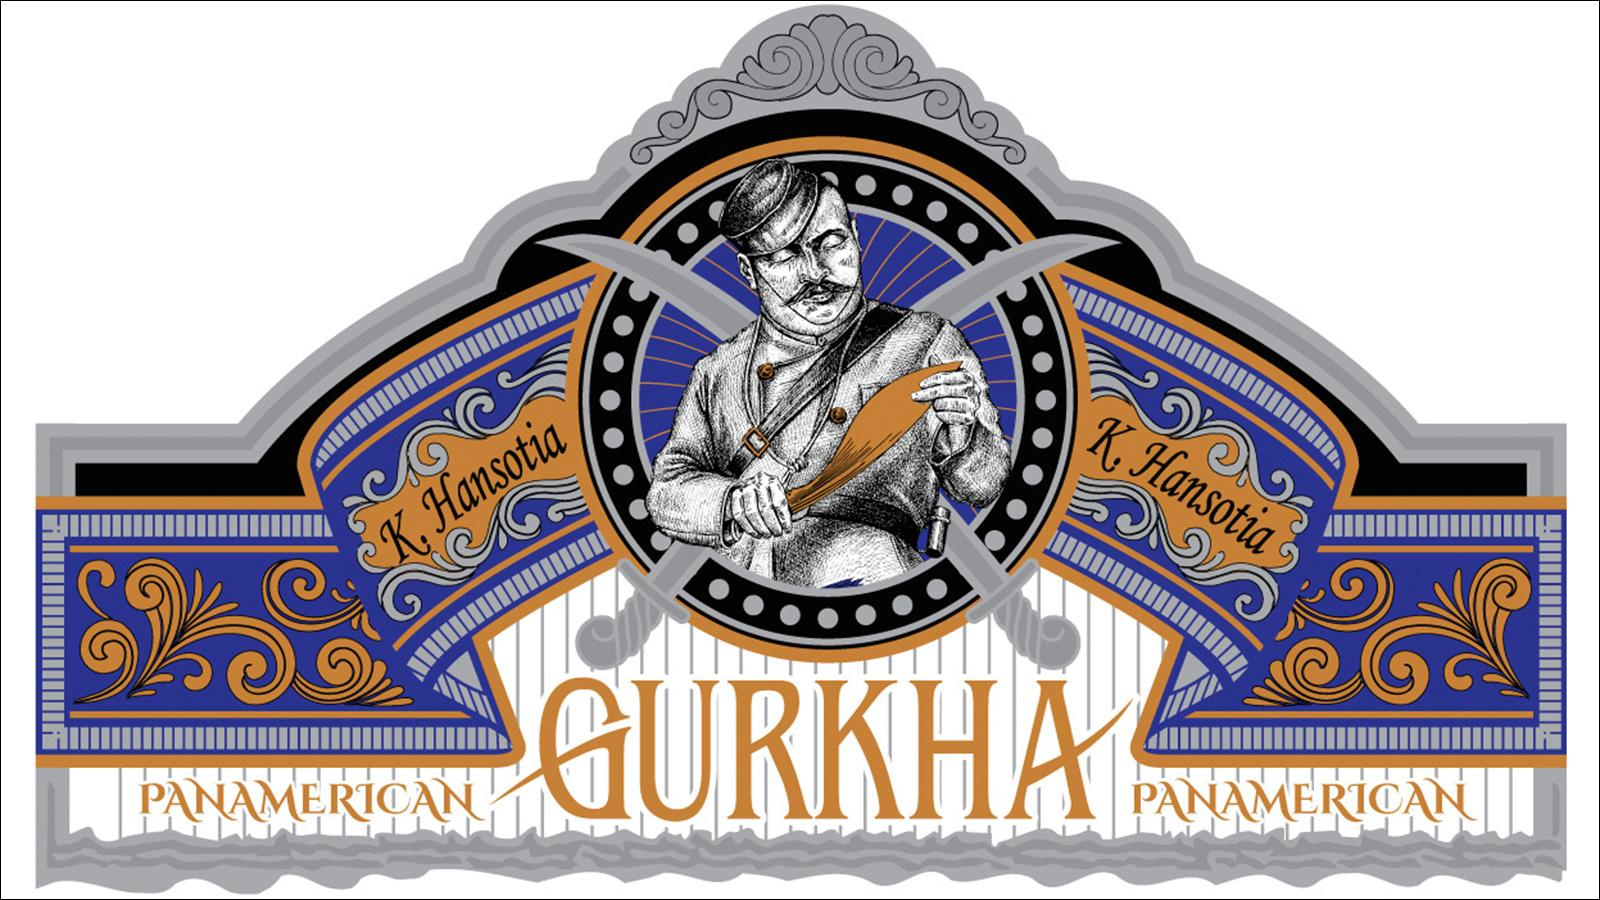 Gurkha Pan American En Route To IPCPR In A Steel And Leather Box